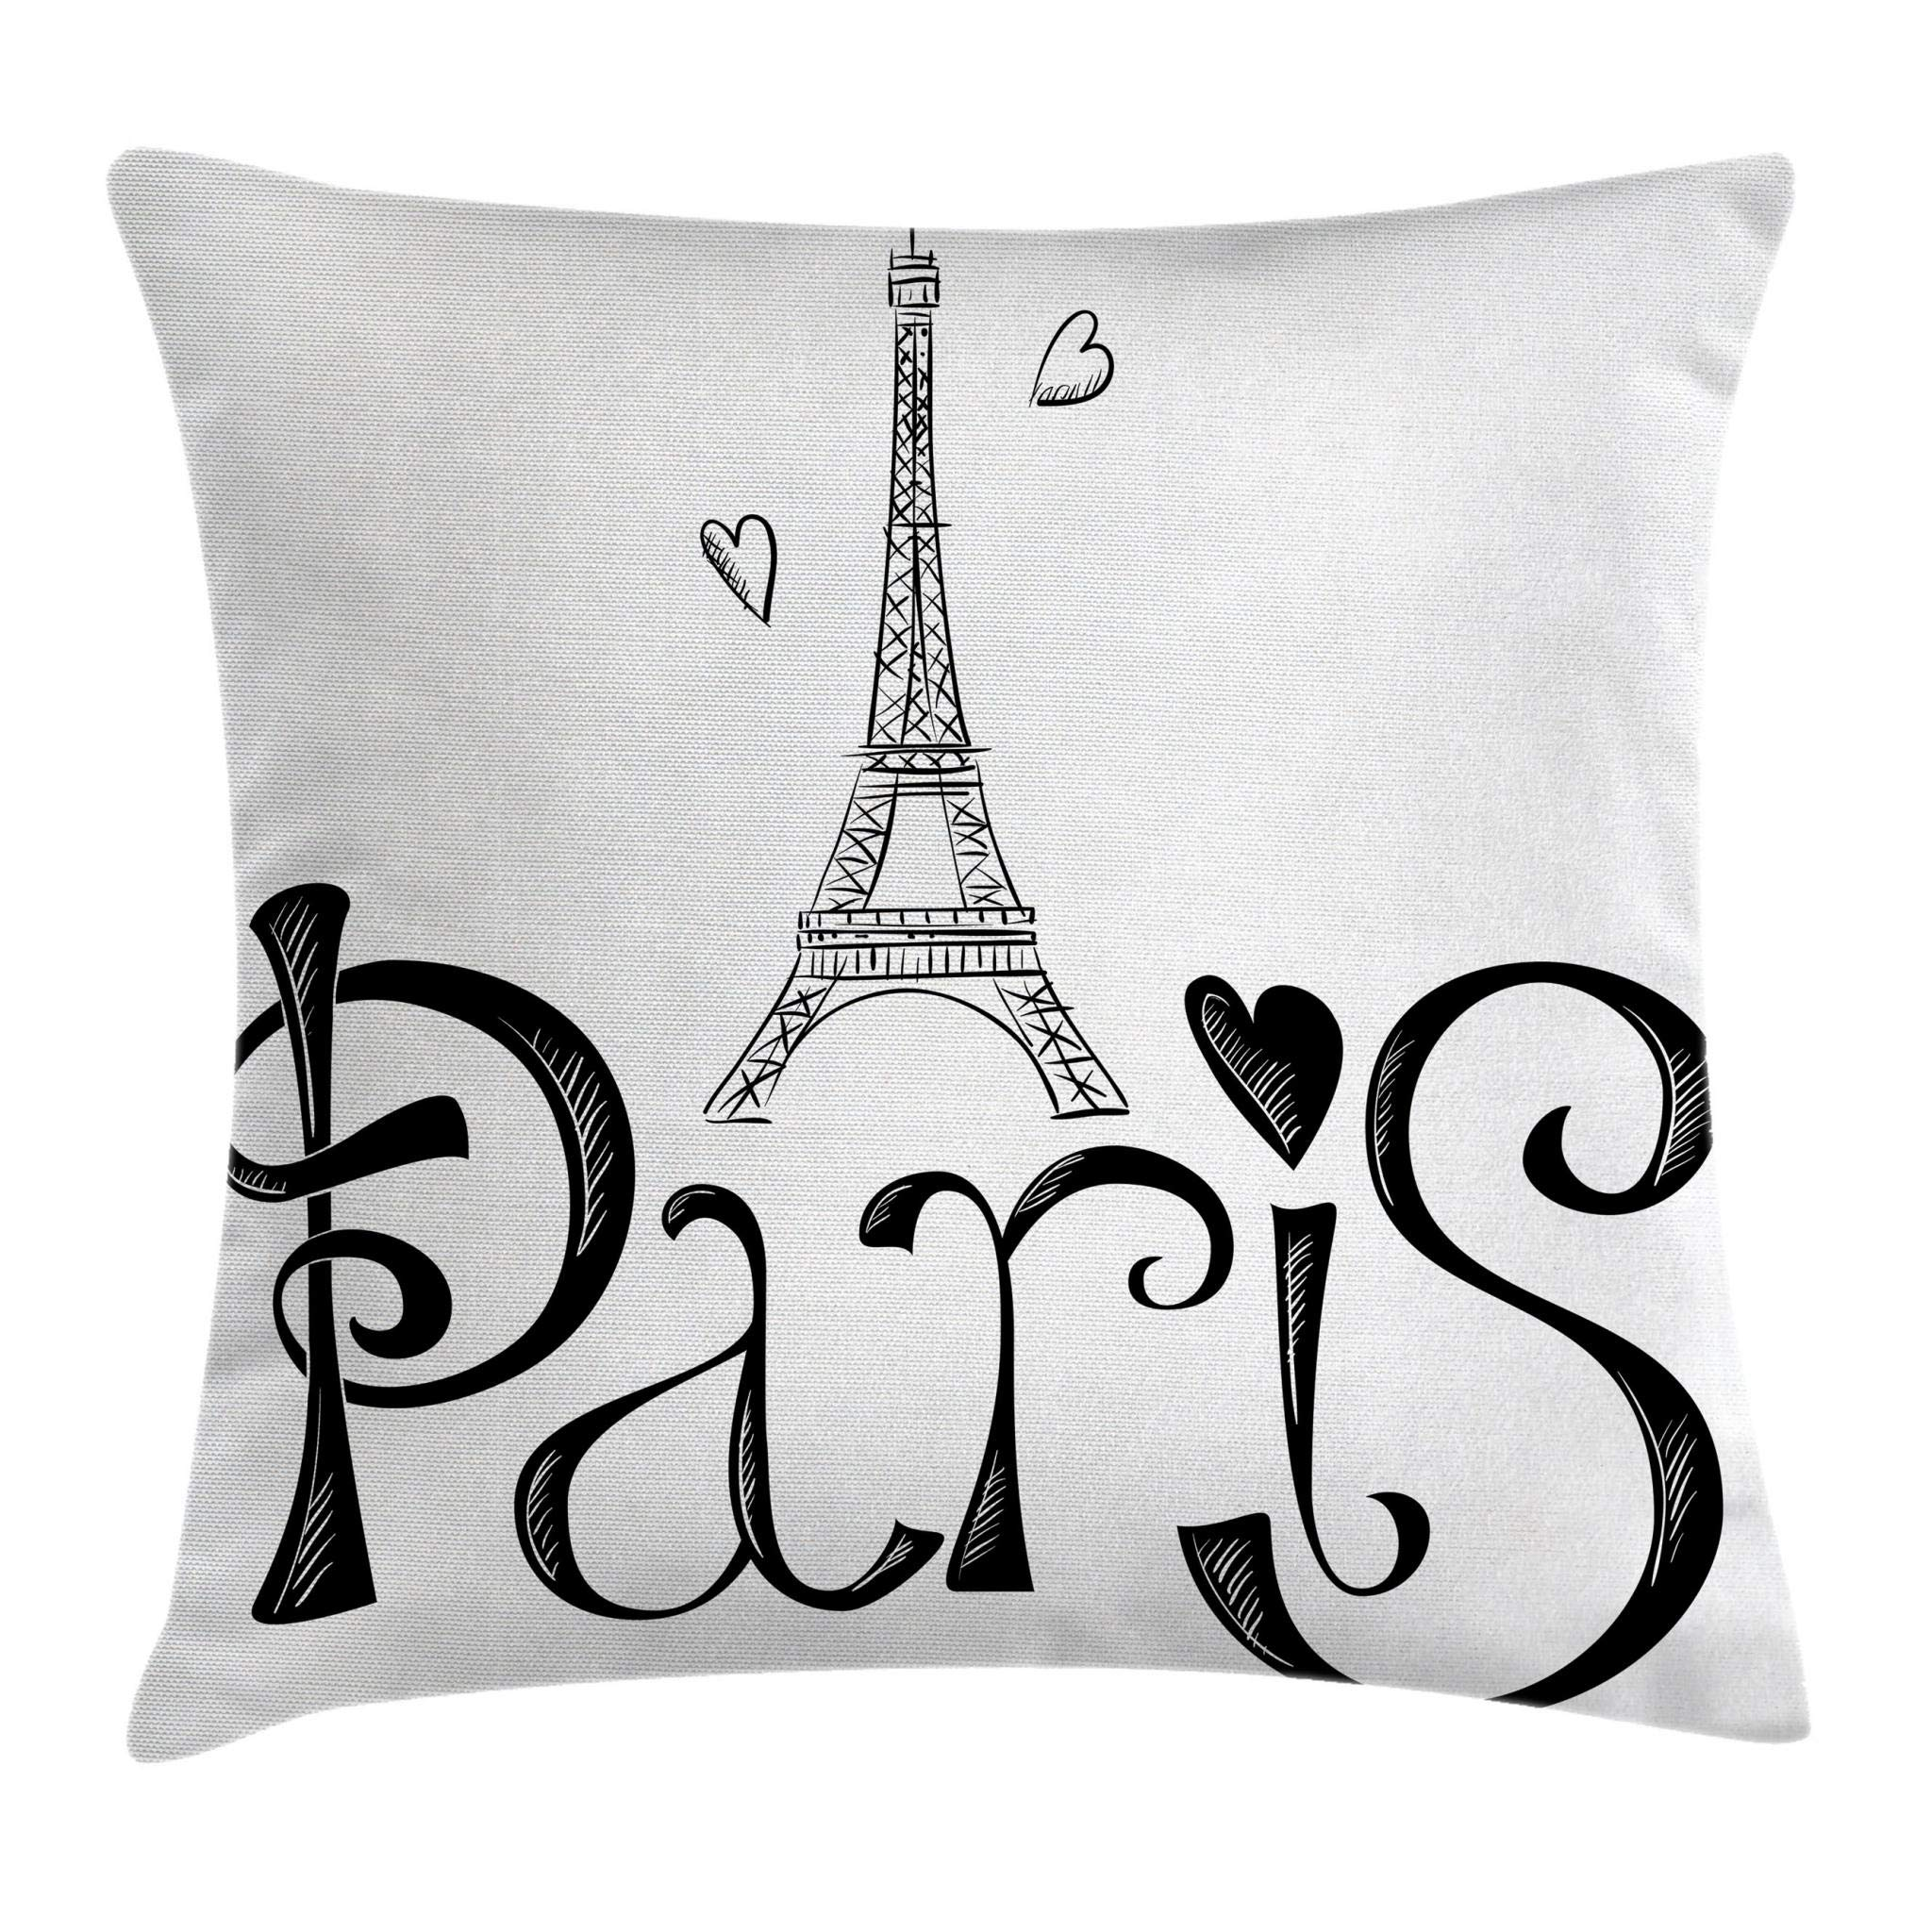 Ambesonne Paris Throw Pillow Cushion Cover, Illustration with Eiffel Tower France Heart Shapes Silhouette Vacation Theme Art, Decorative Square Accent Pillow Case, 16 X 16 Inches, Black White